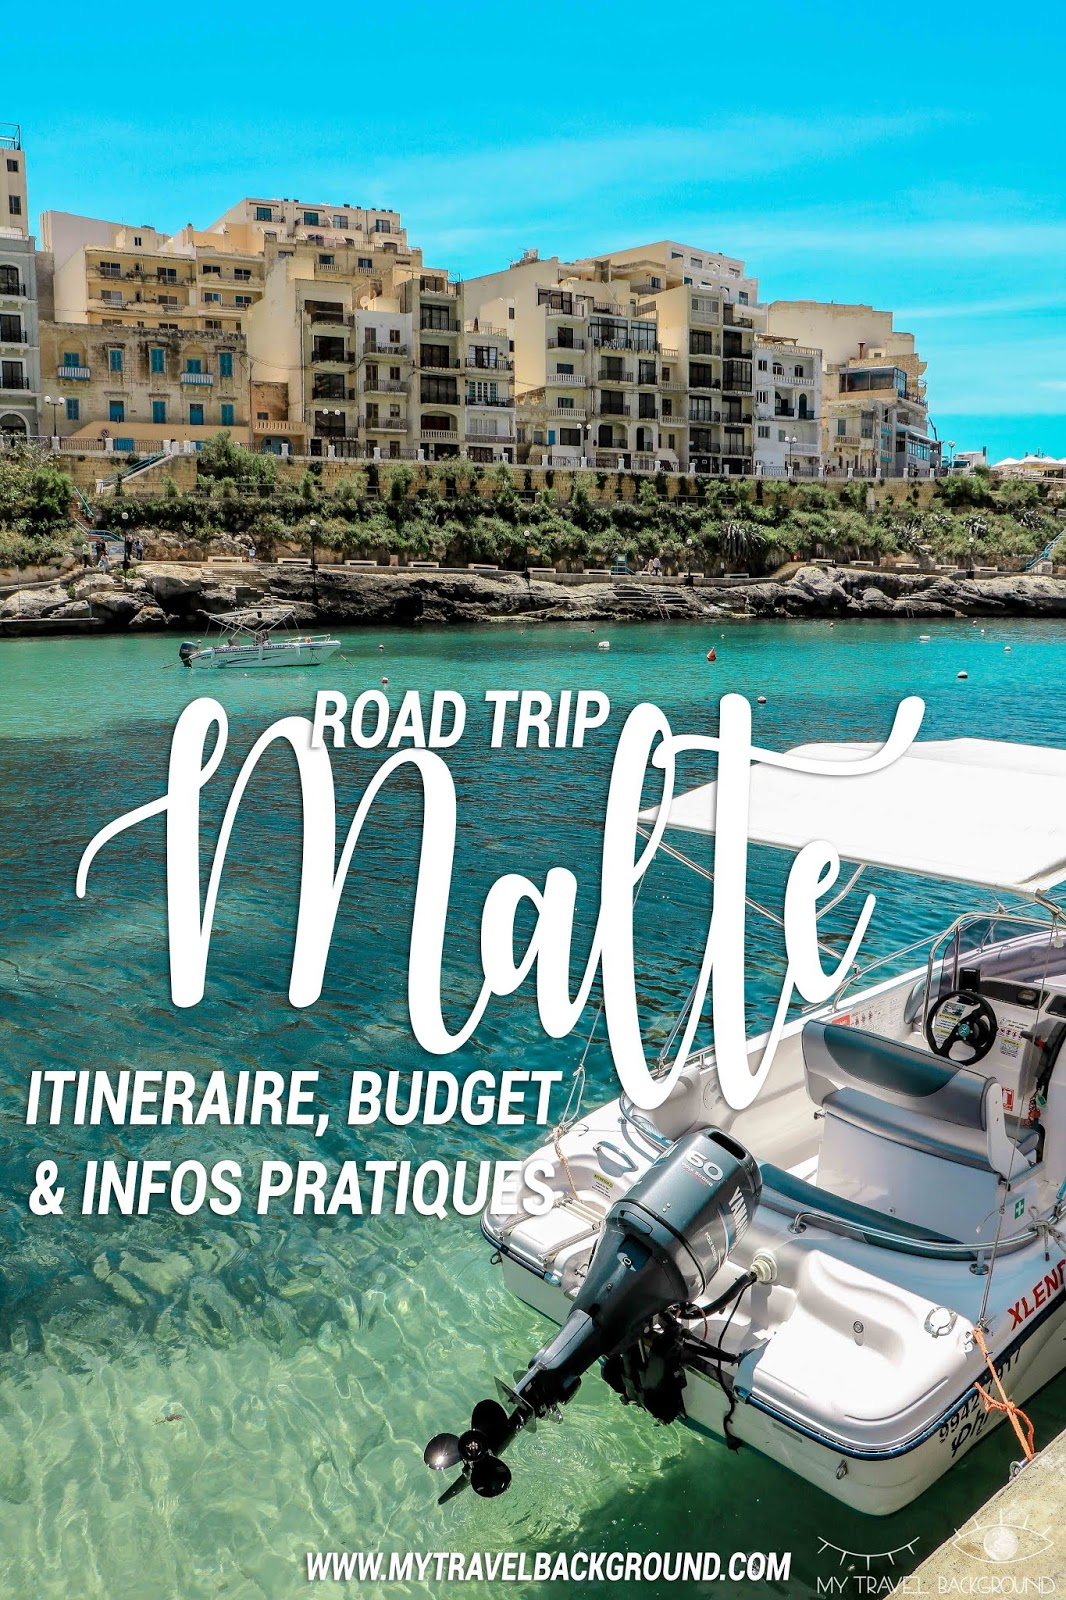 My Travel Background : Road trip à Malte, itinéraire, budget et infos pratiques